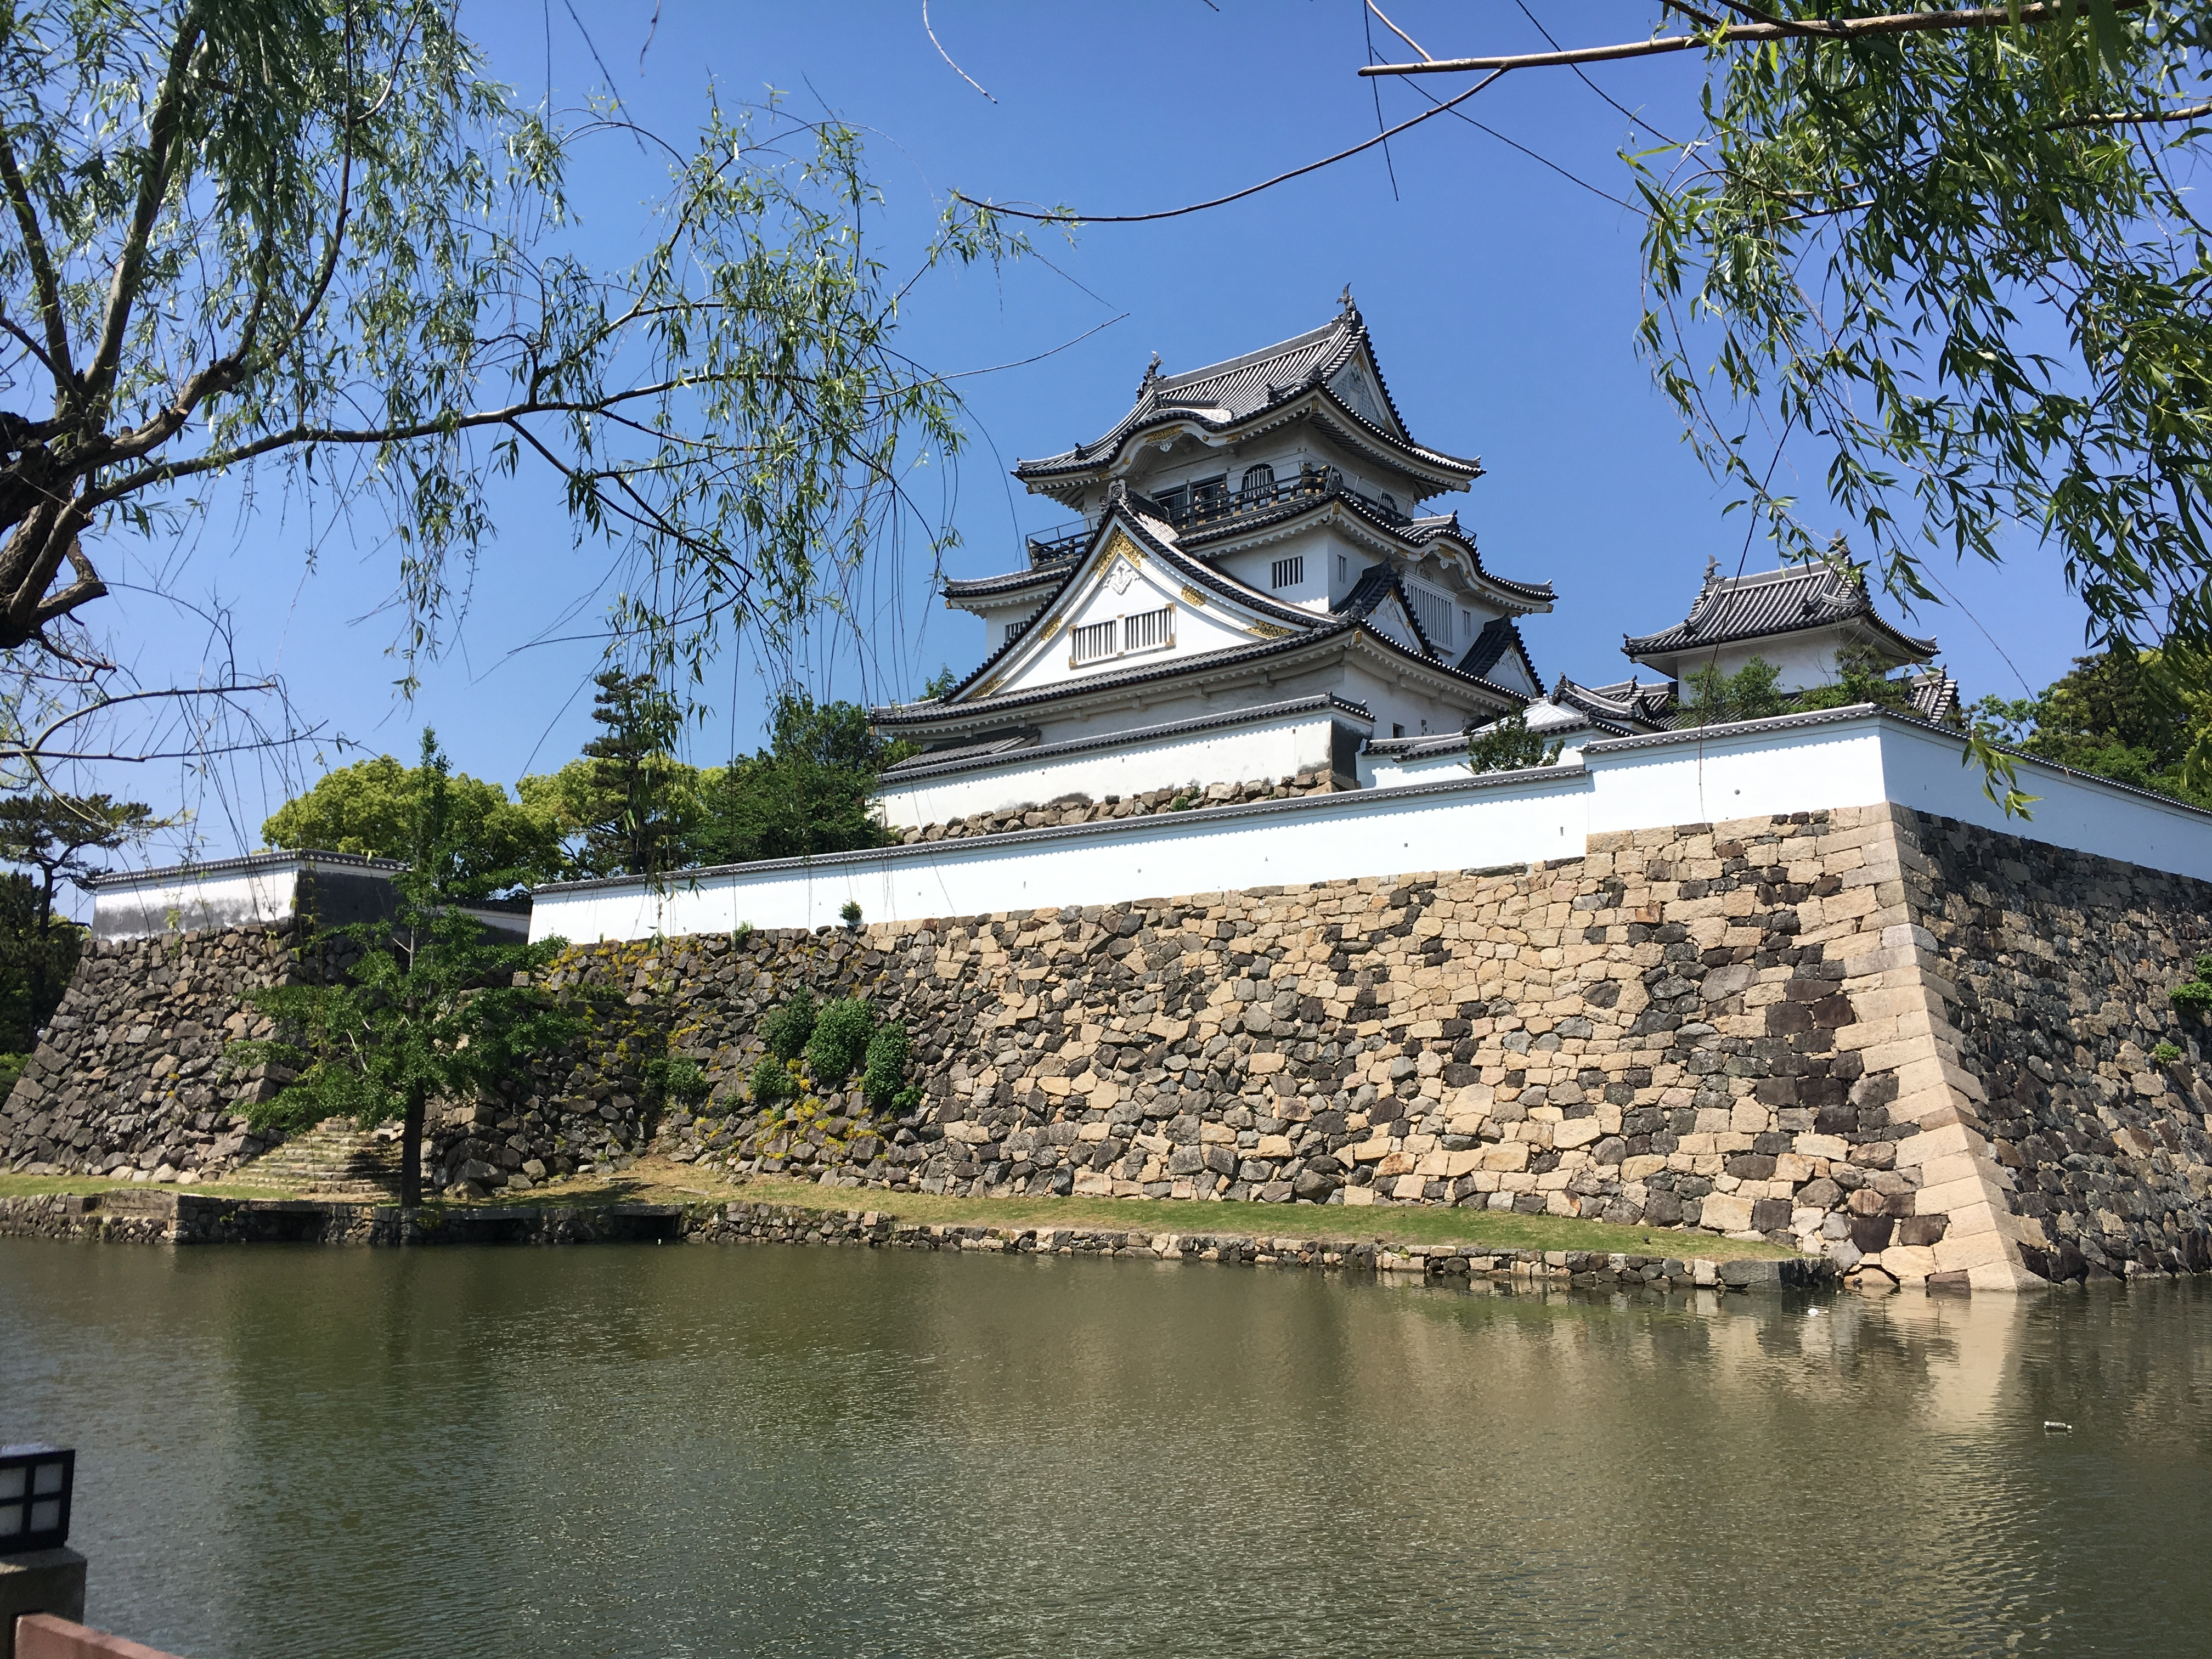 Kishiwada castle framed by willow trees